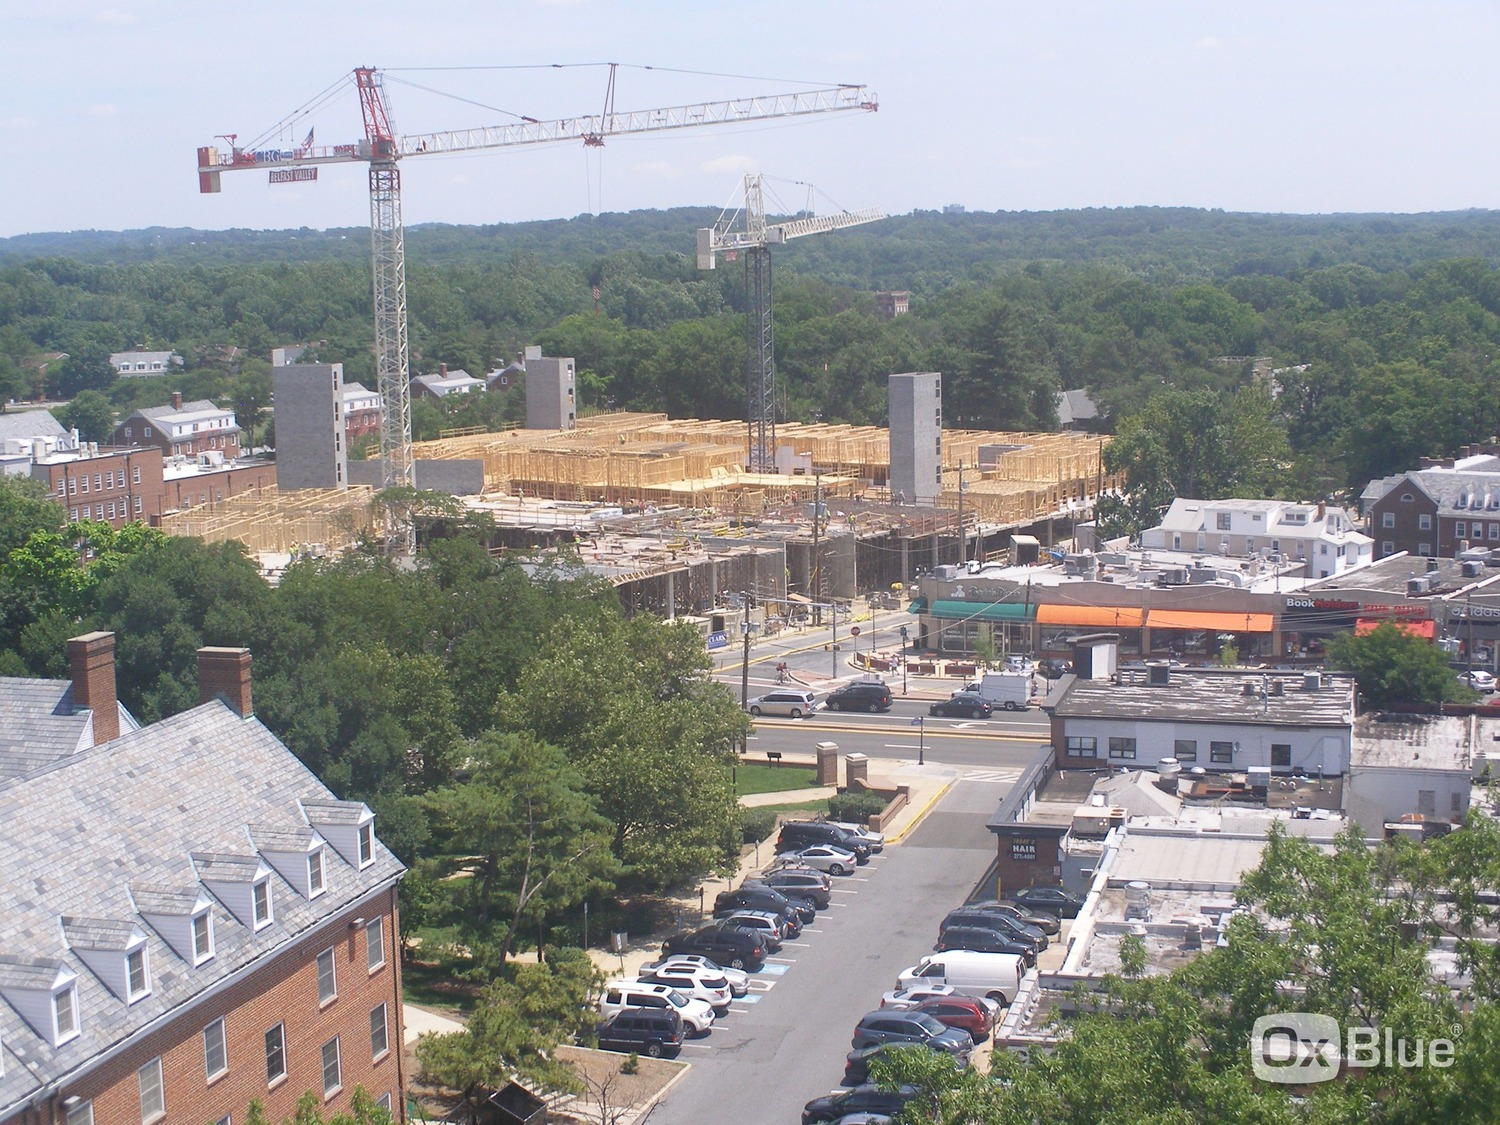 CBG builds Landmark College Park, a 283-Unit, 843-Bed Student Housing Community with Retail in College Park, MD - Image #8